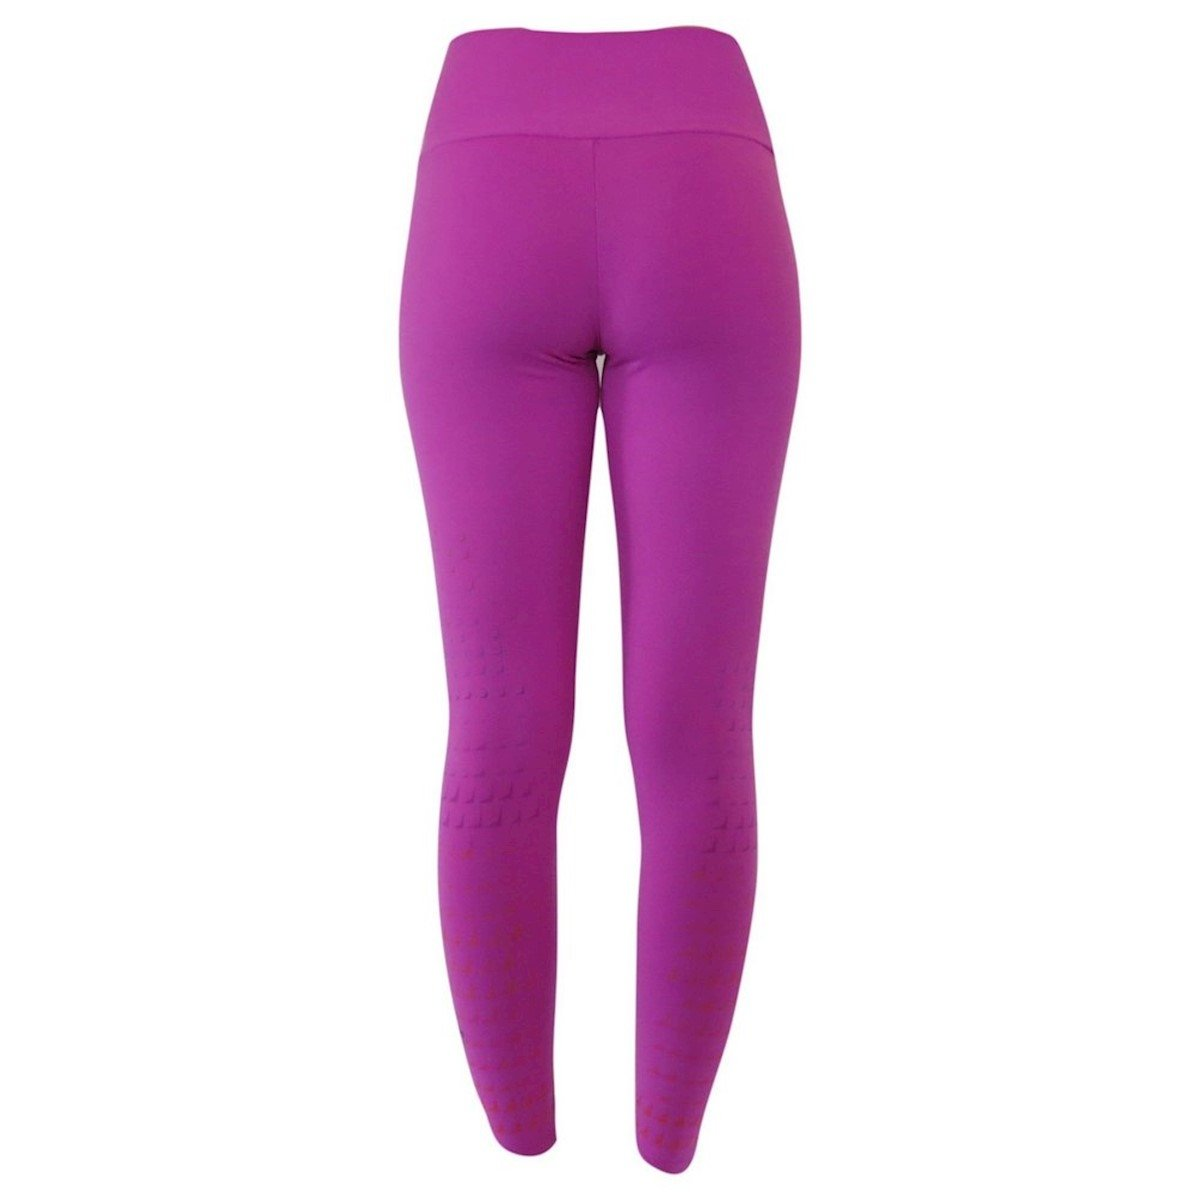 Alto Giro Fit Supplex Legging Legging Feminina Rosa Supplex Silk qxTYXfI